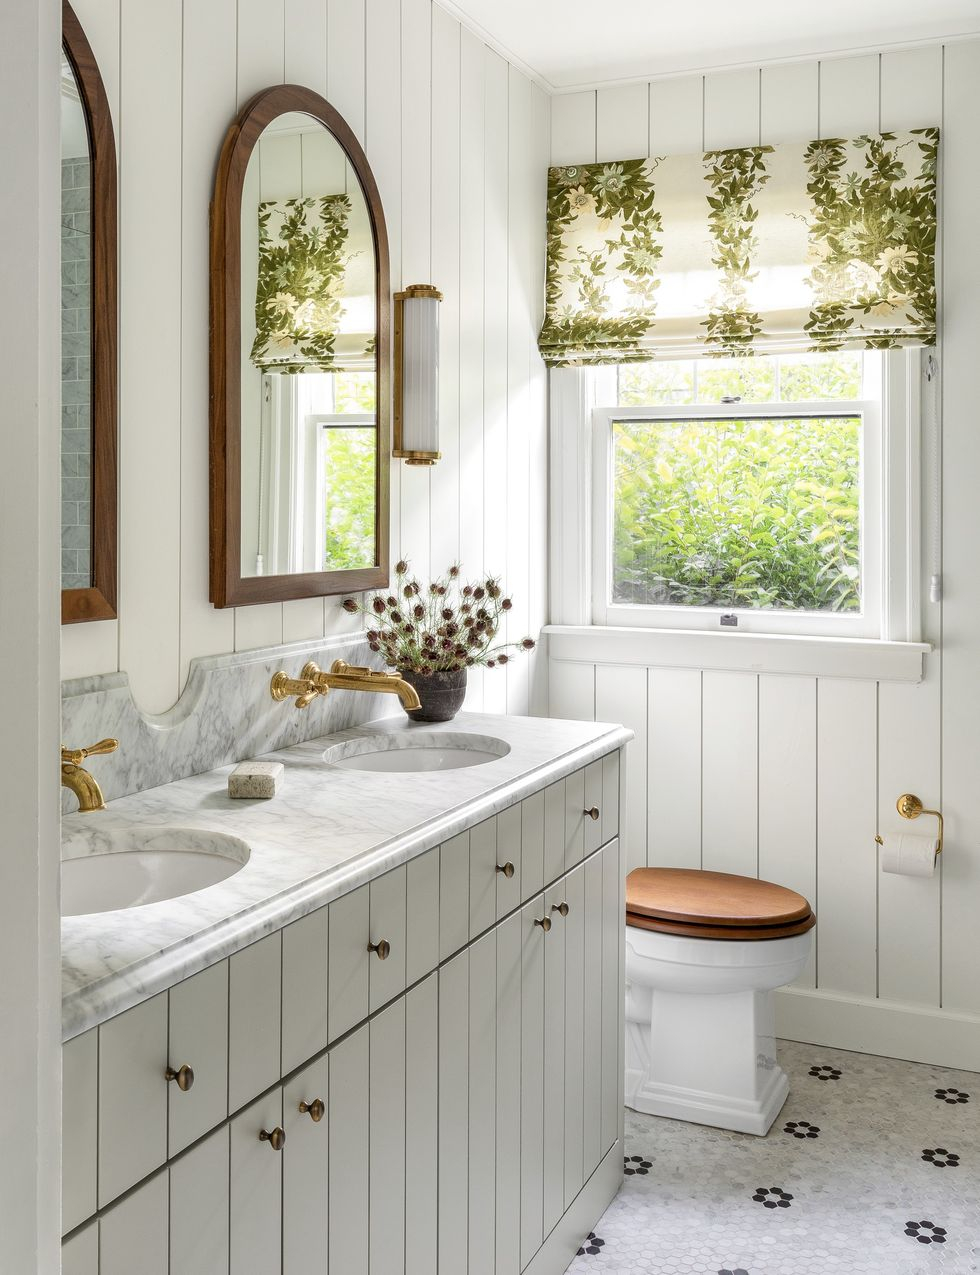 Light plant privacy Vitalizing Half Bathroom Ideas That Refreshing Your Half Space In A Right Way